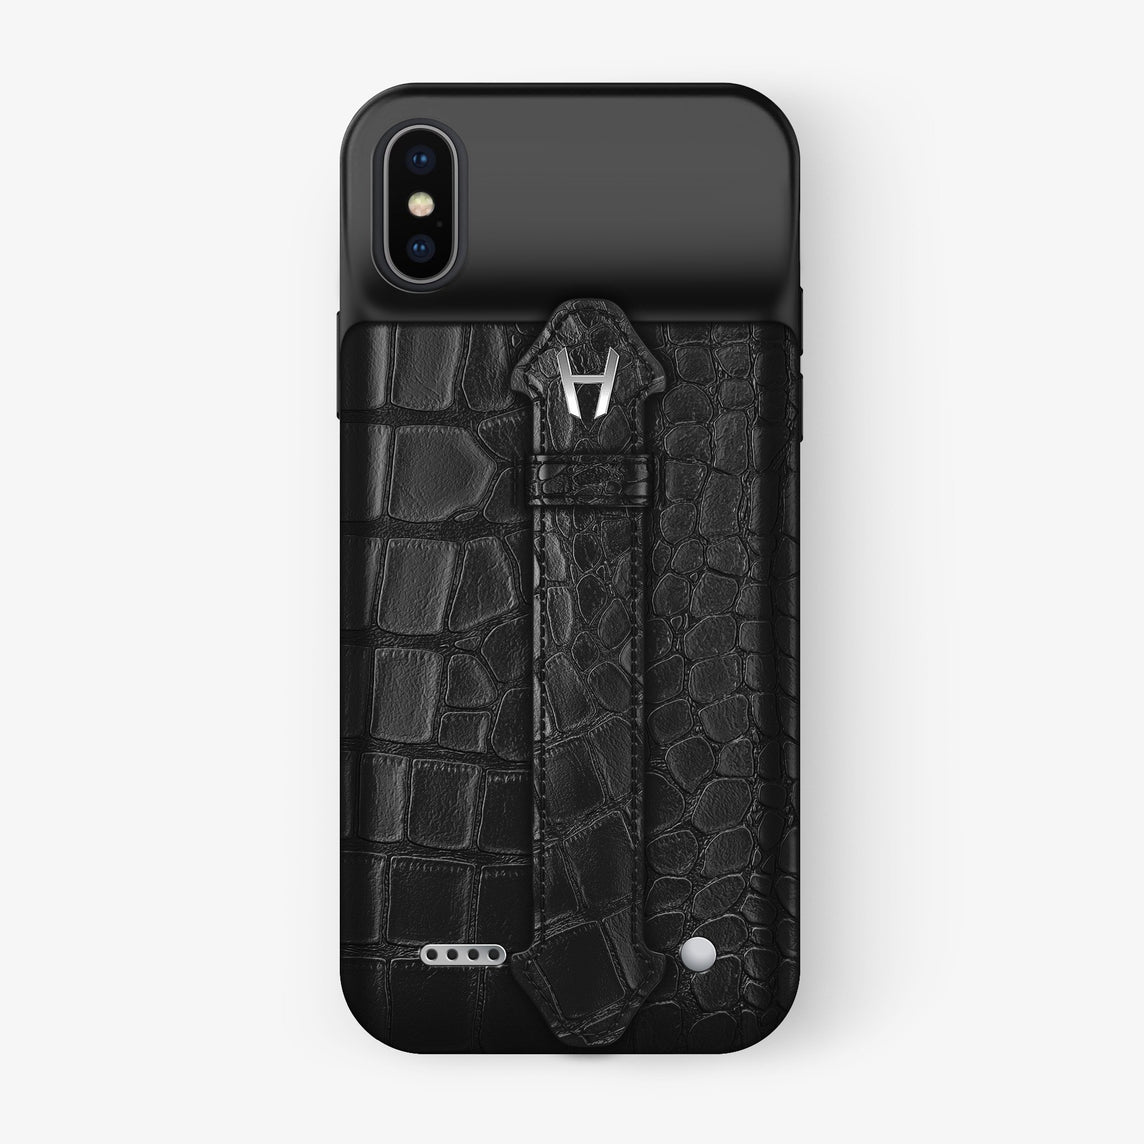 Alligator iPhone Xs Max Battery Finger Case | Black - Stainless Steel with-personalization